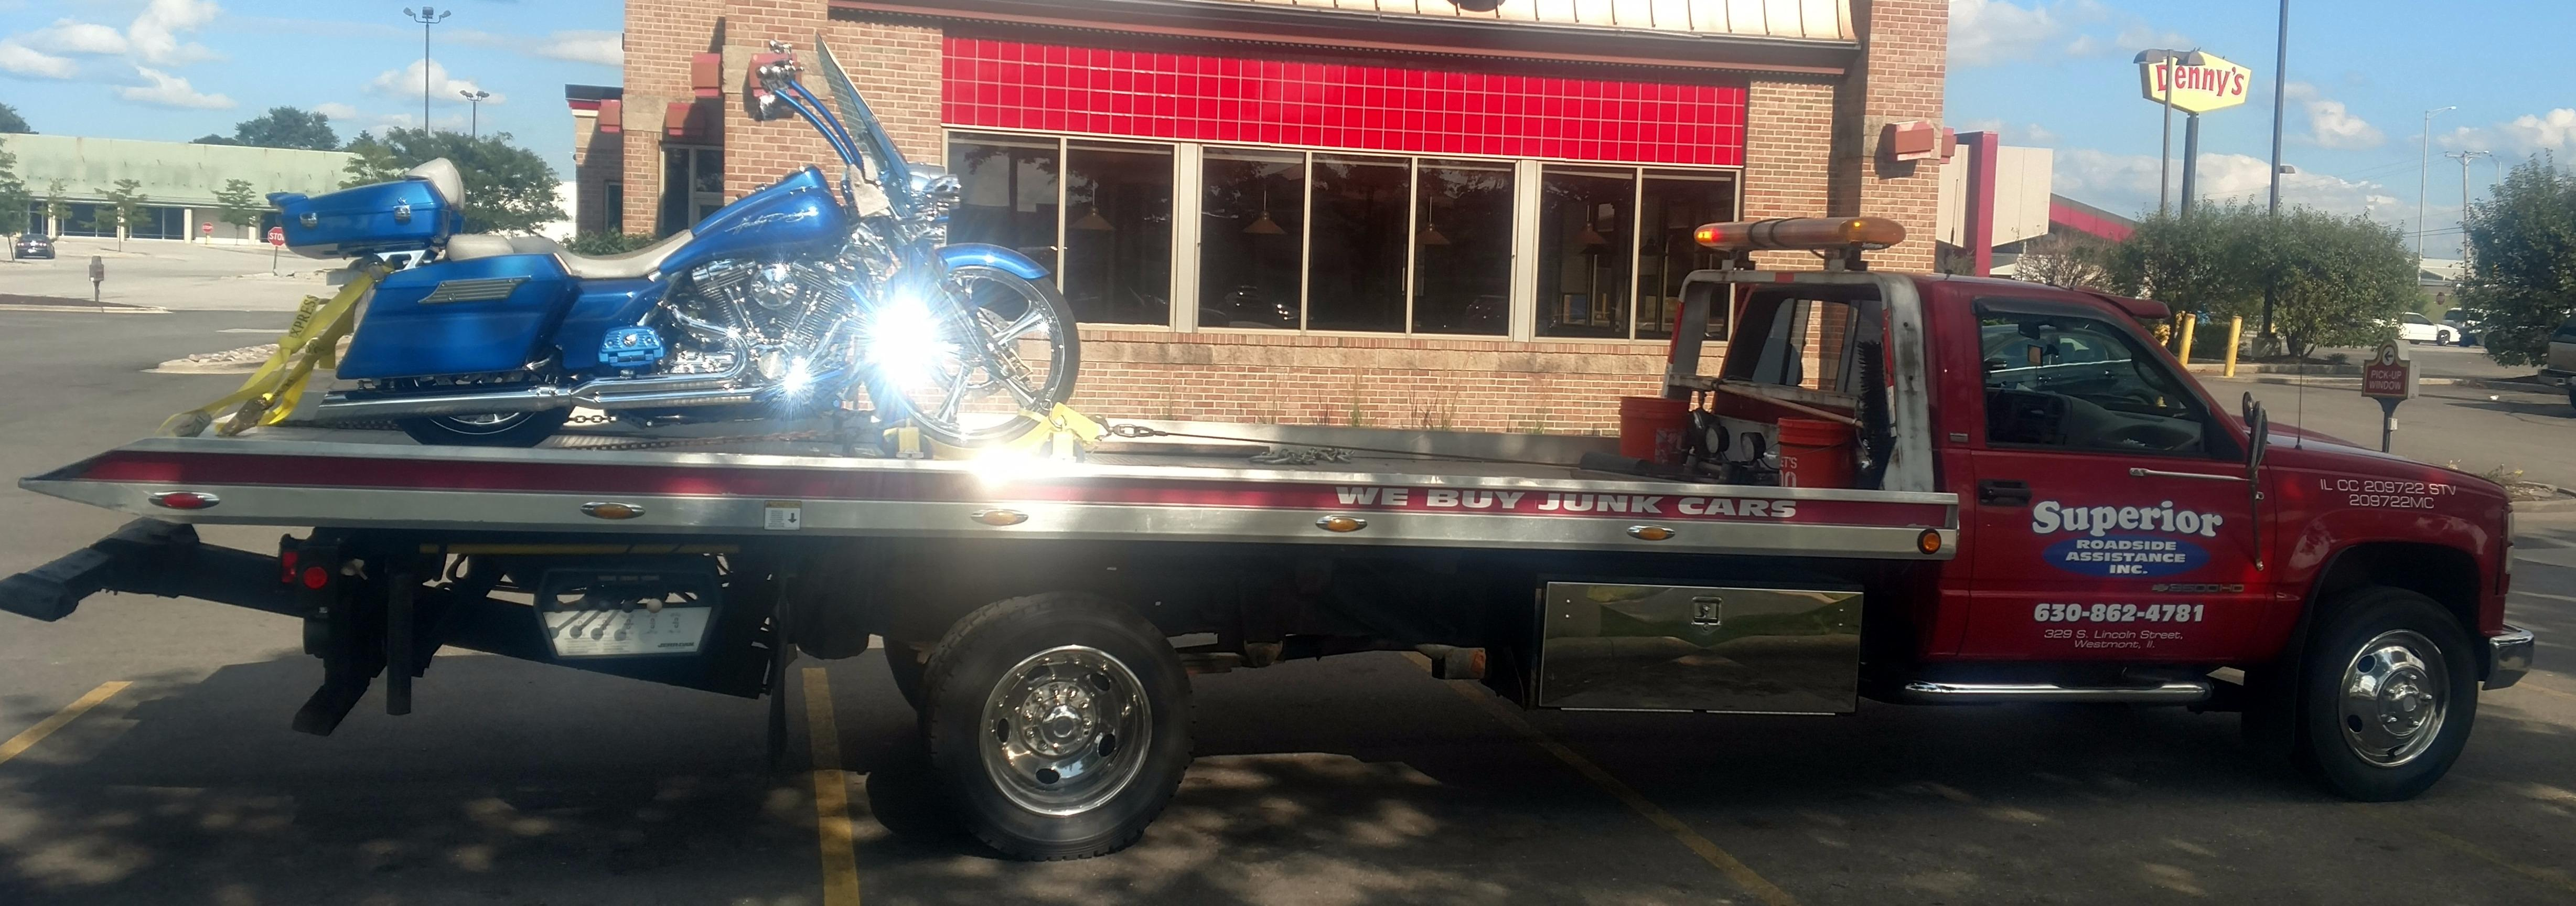 Westmont Towing image 26